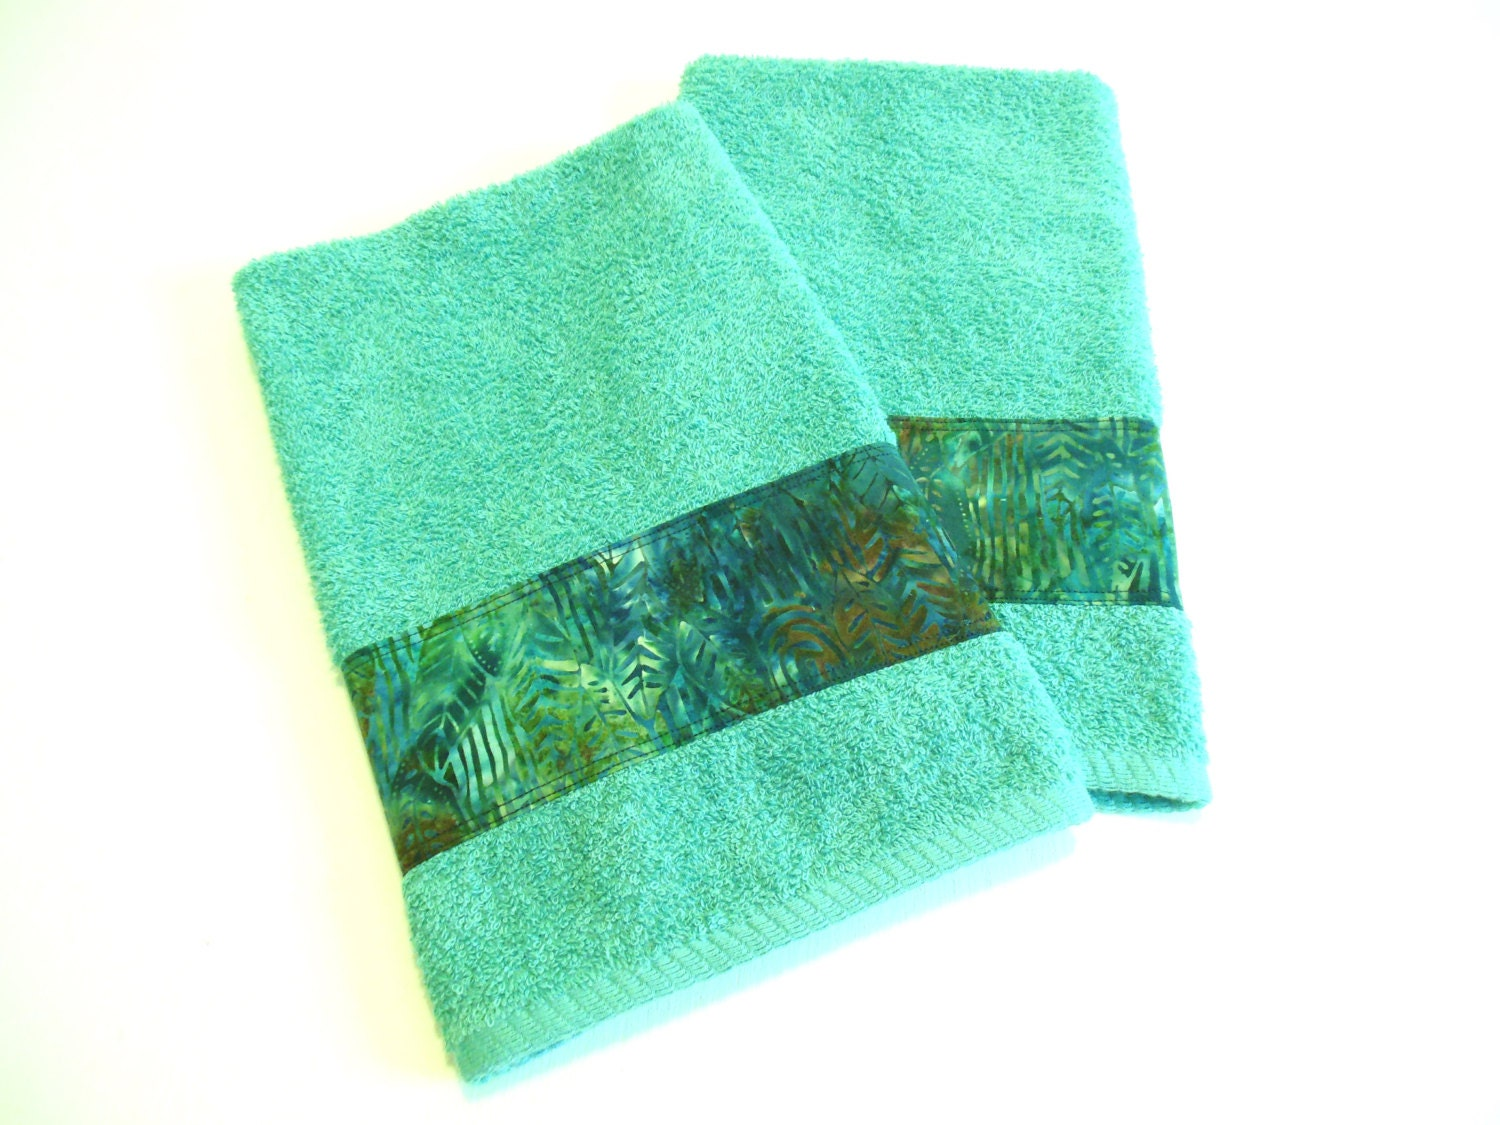 Teal batik hand towels decorative bathroom towels kitchen for Bathroom decorative towels